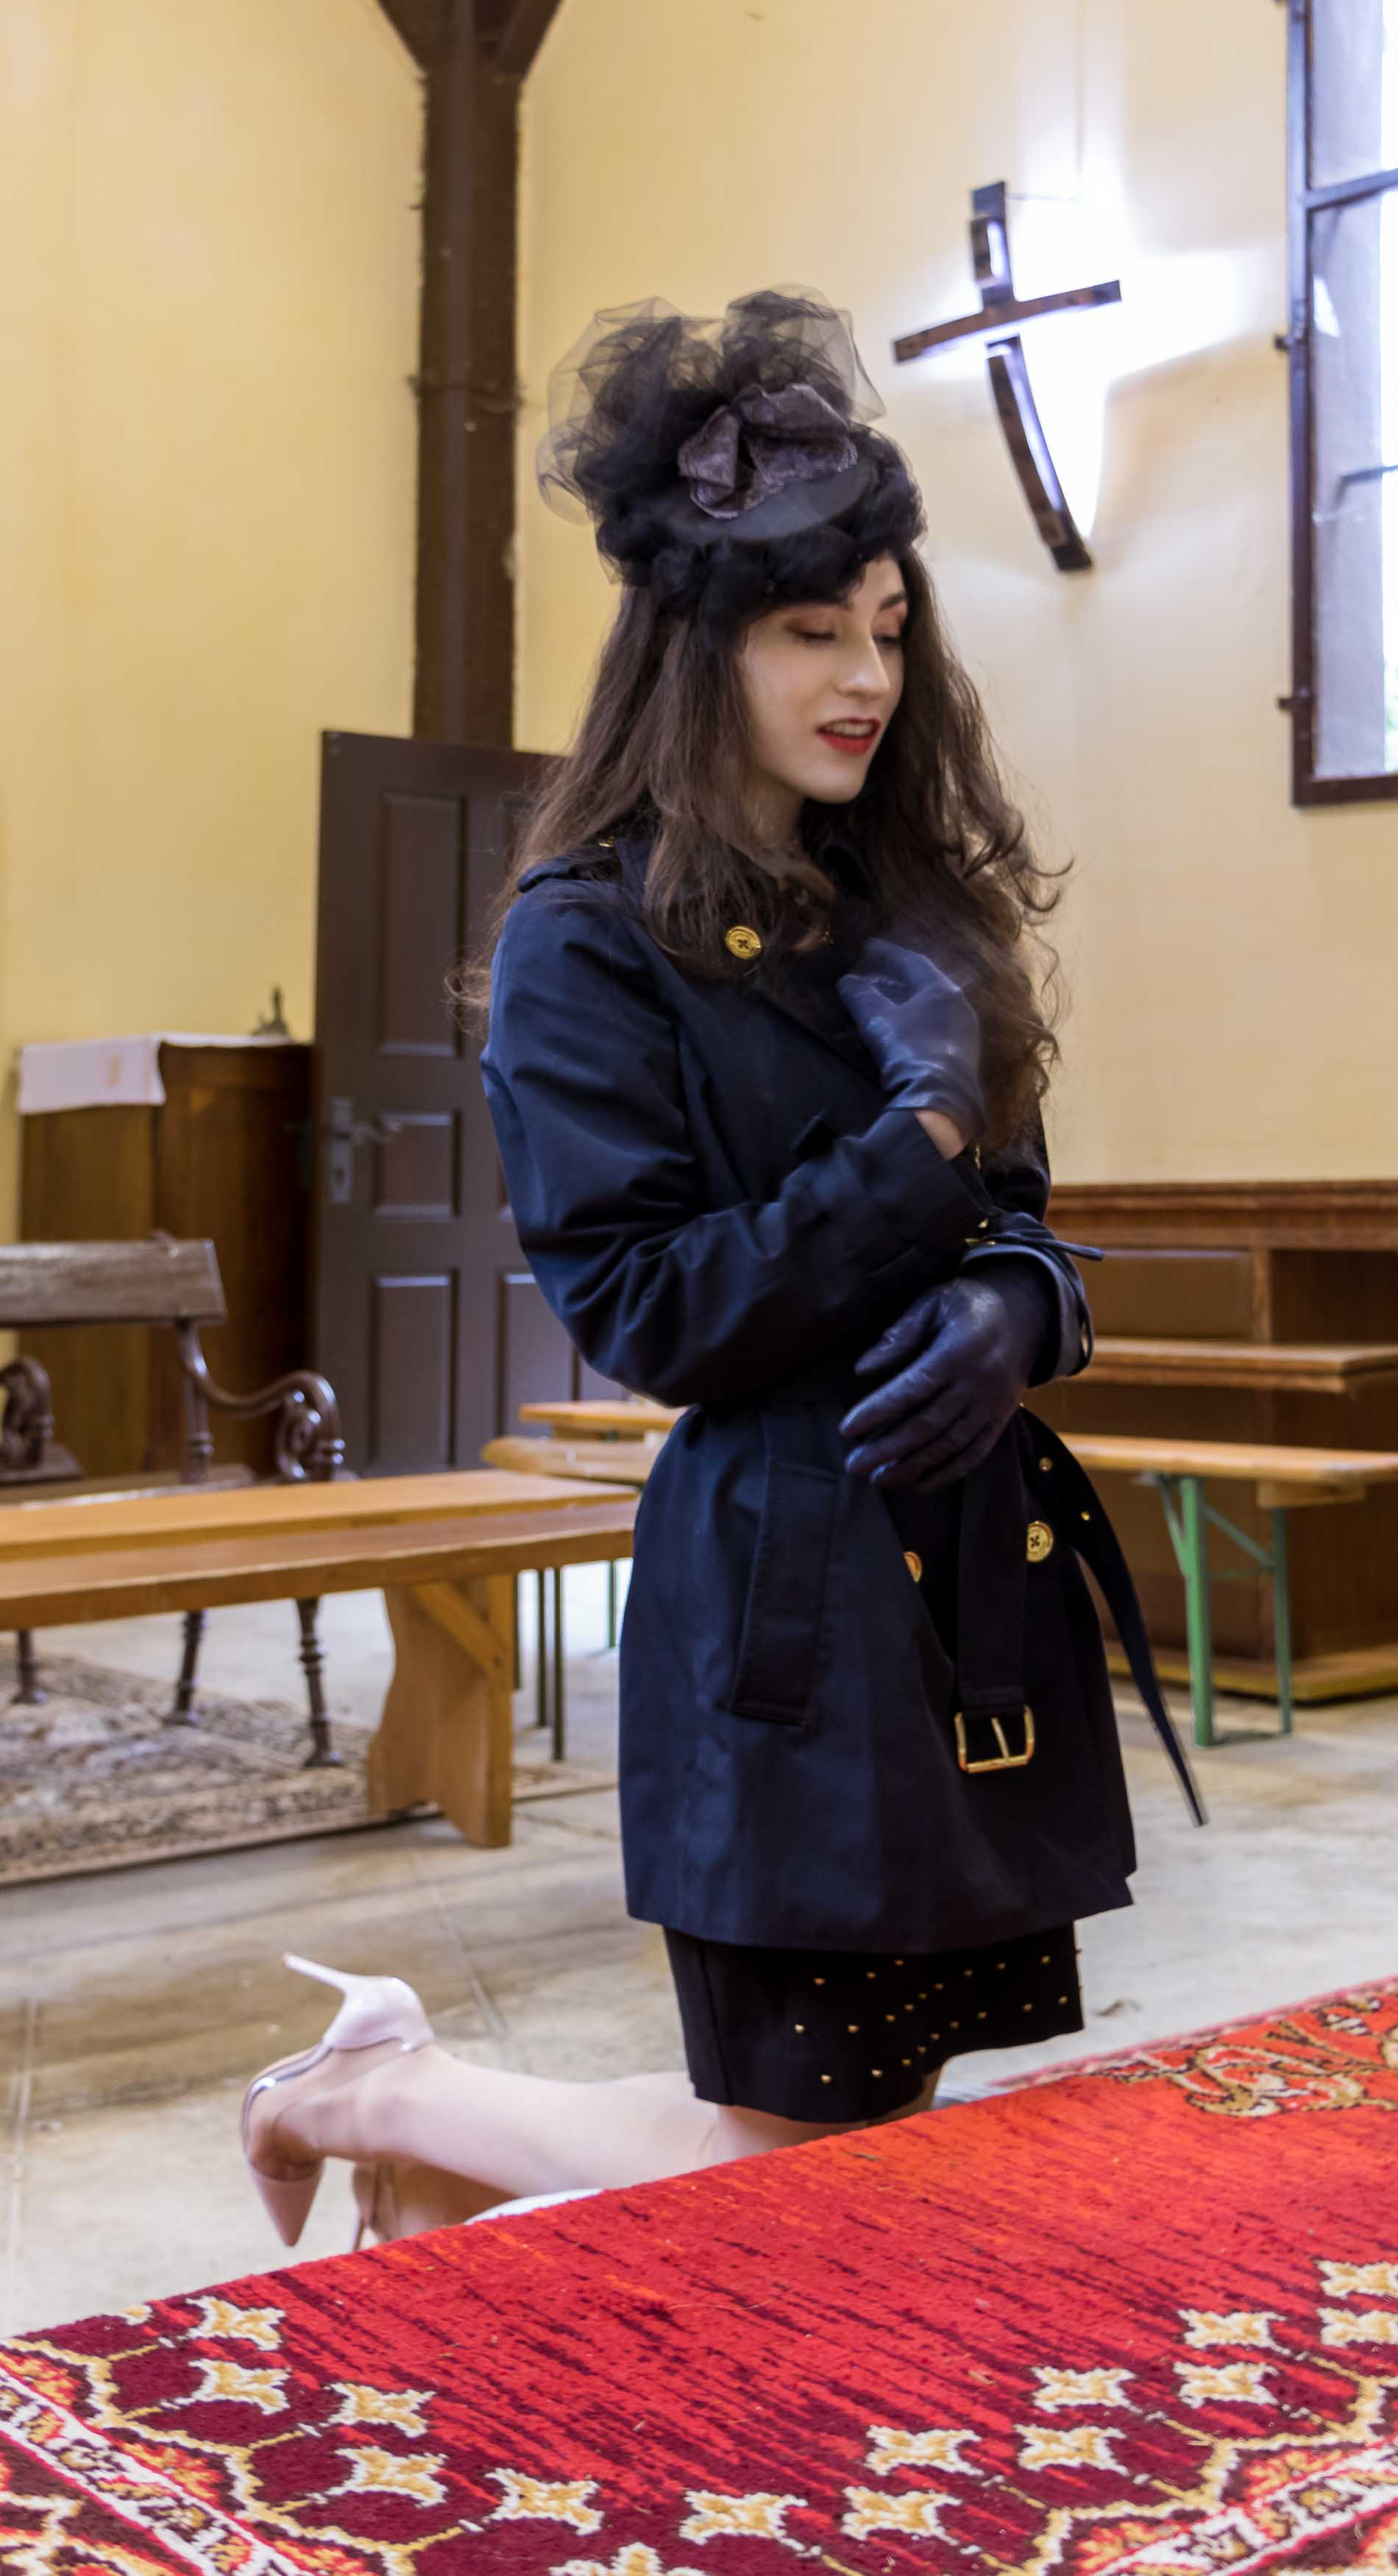 Fashion Blogger Veronika Lipar of Brunette from Wall Street dressed in blue Burberry trench coat, Gianvito Rossi plexi pumps, small black white shoulder bagand headwear in church